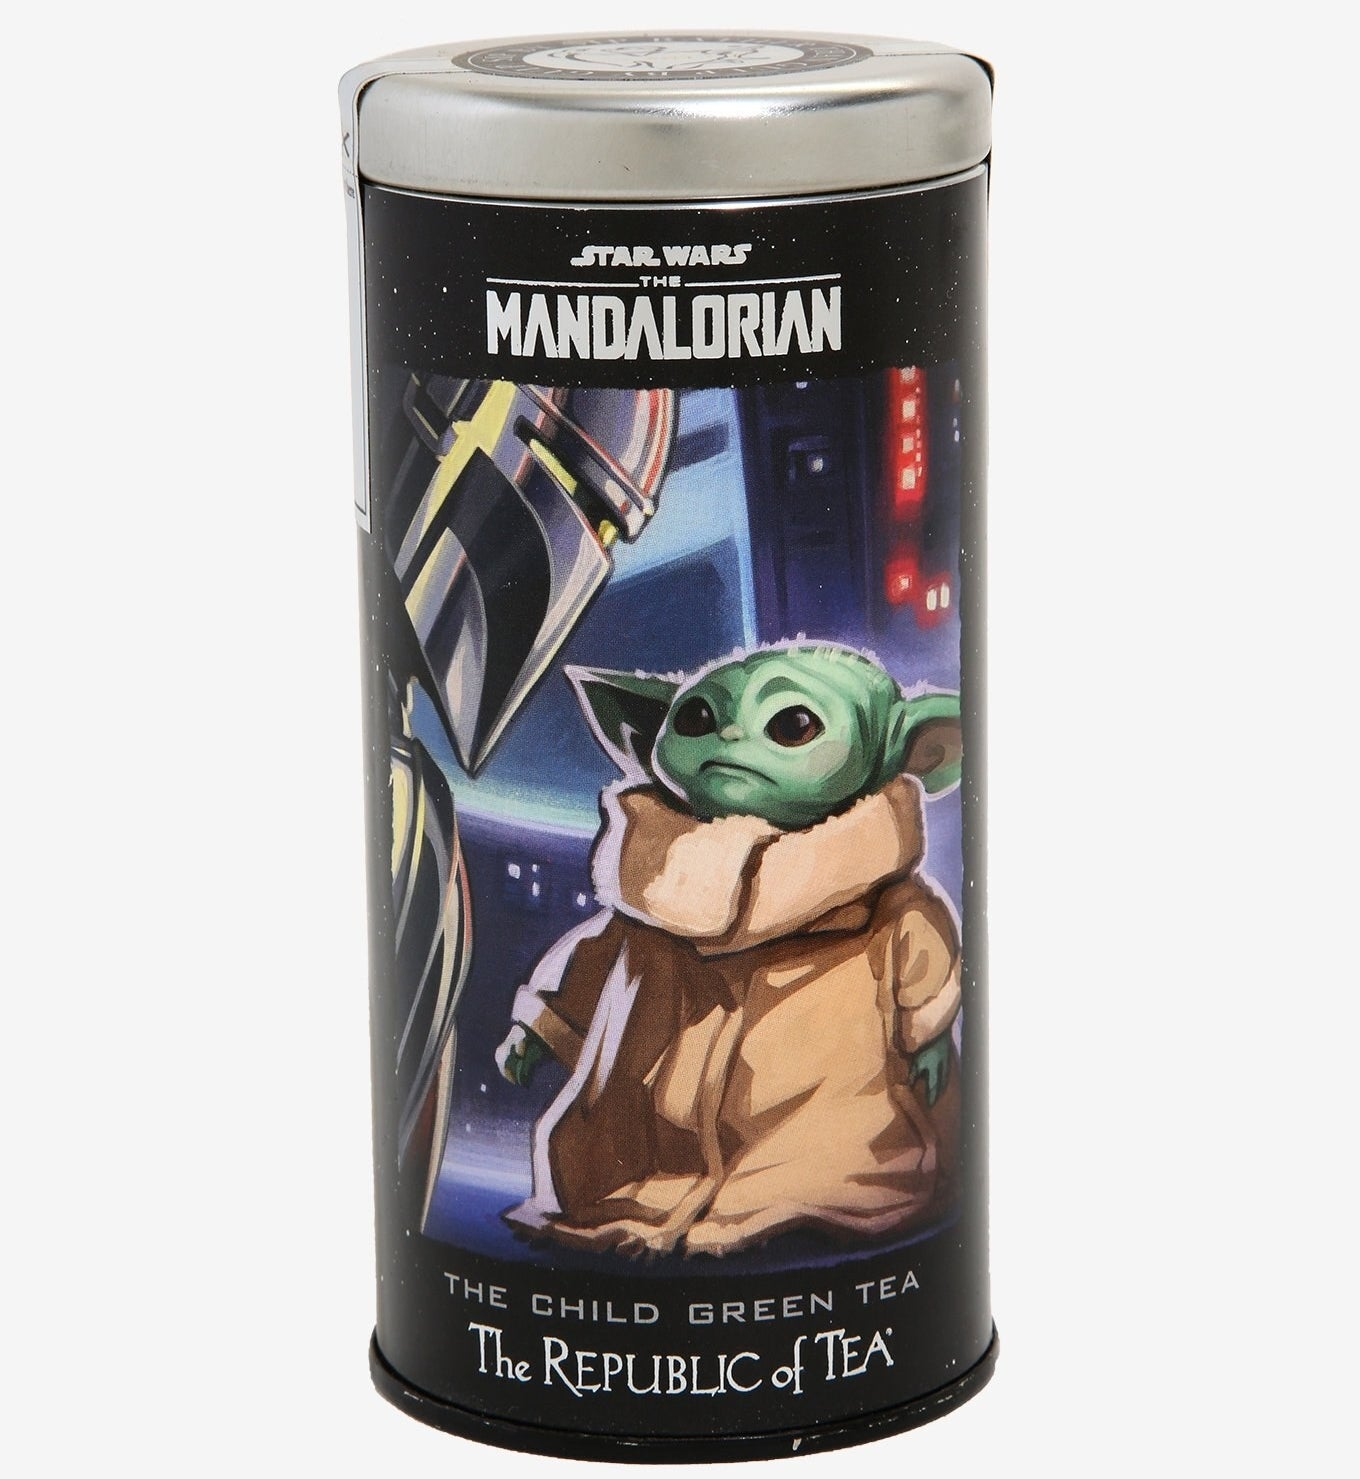 Tin with round tea bags and baby Yoda from The Mandalorian on case